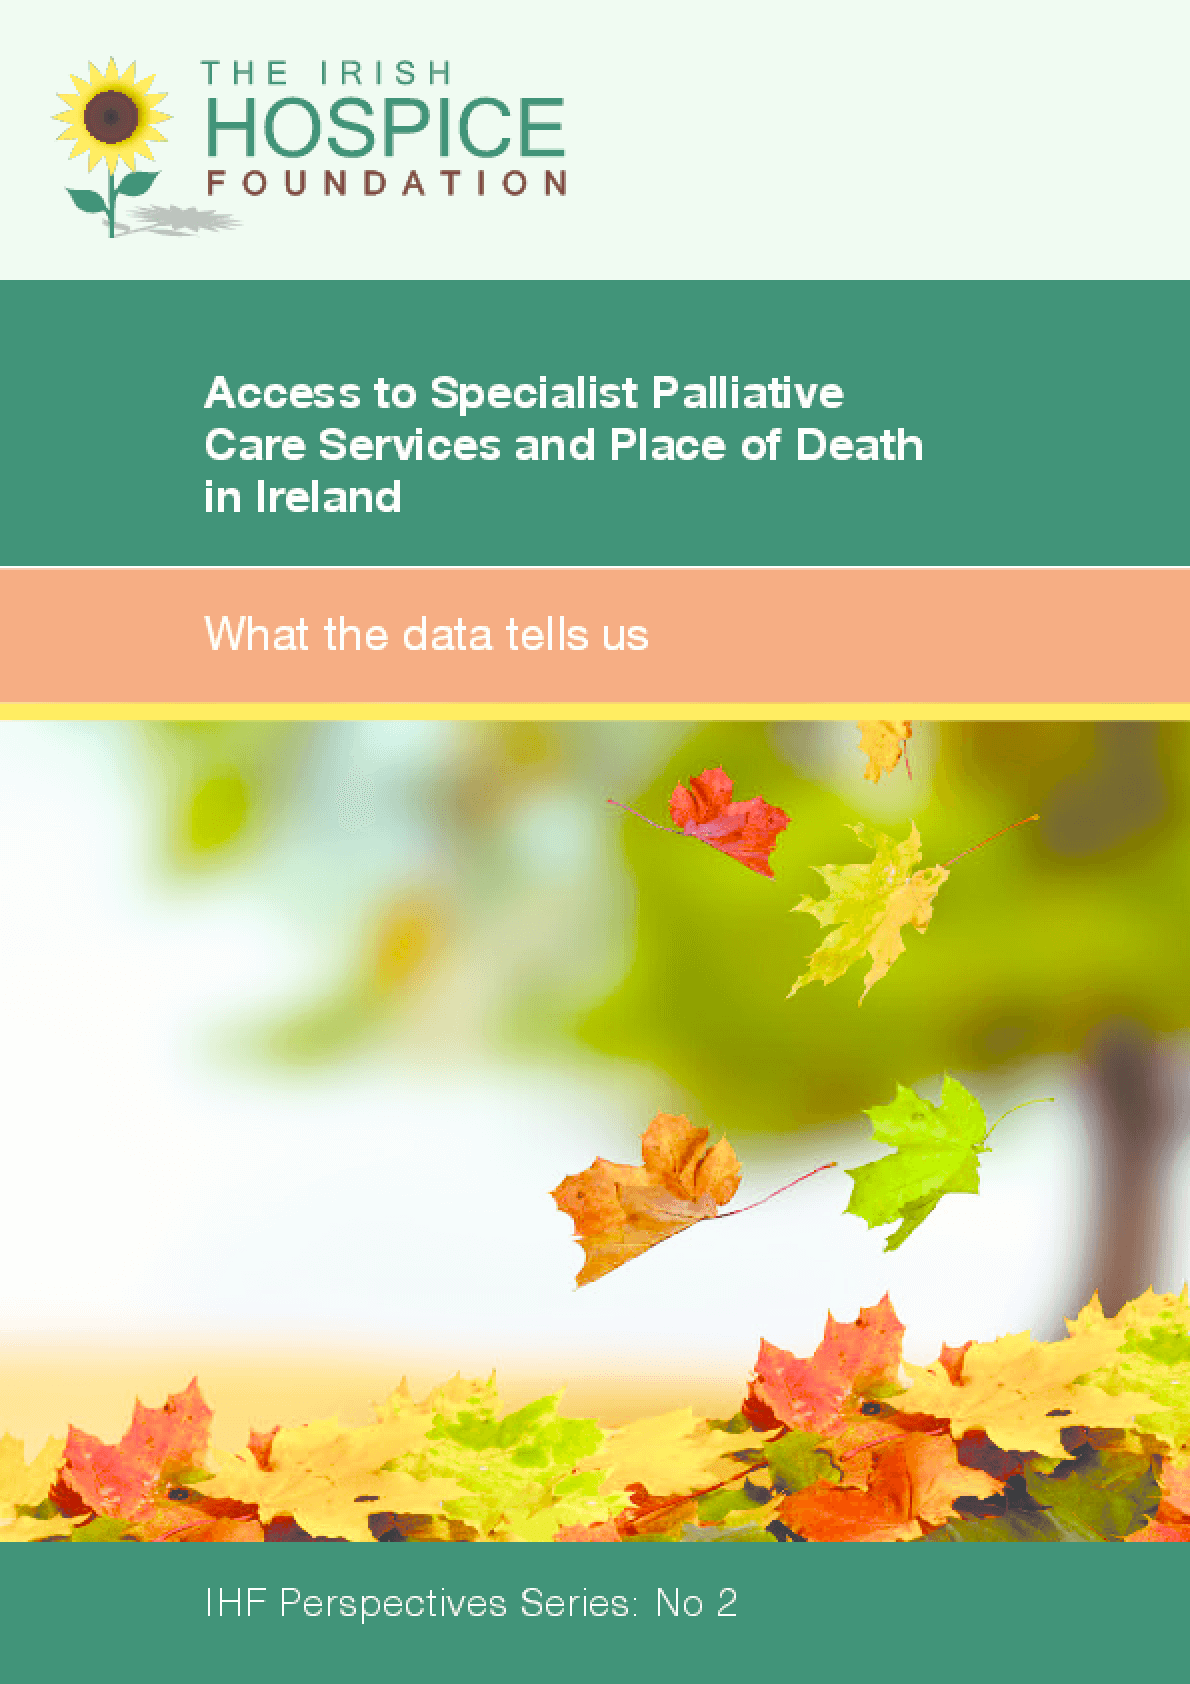 Access to Specialist Palliative Care Services and Place of Death in Ireland